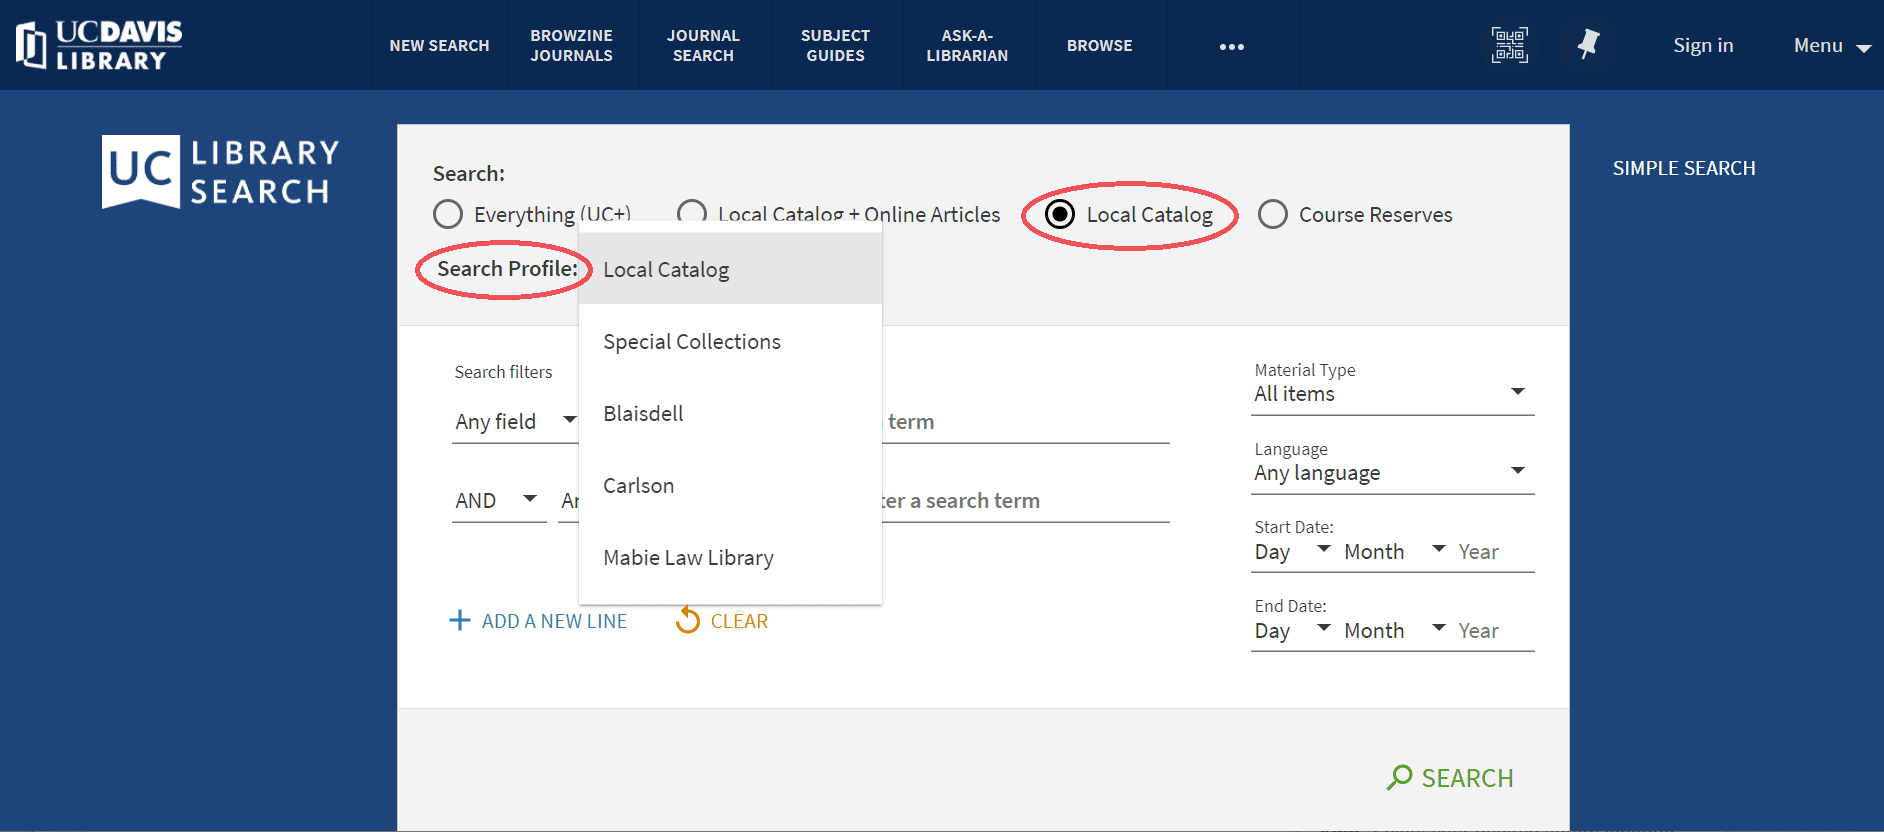 Click the button to search the Local Catalog. Then use the Search Profile dropdown menu to choose your library location or Special Collections.